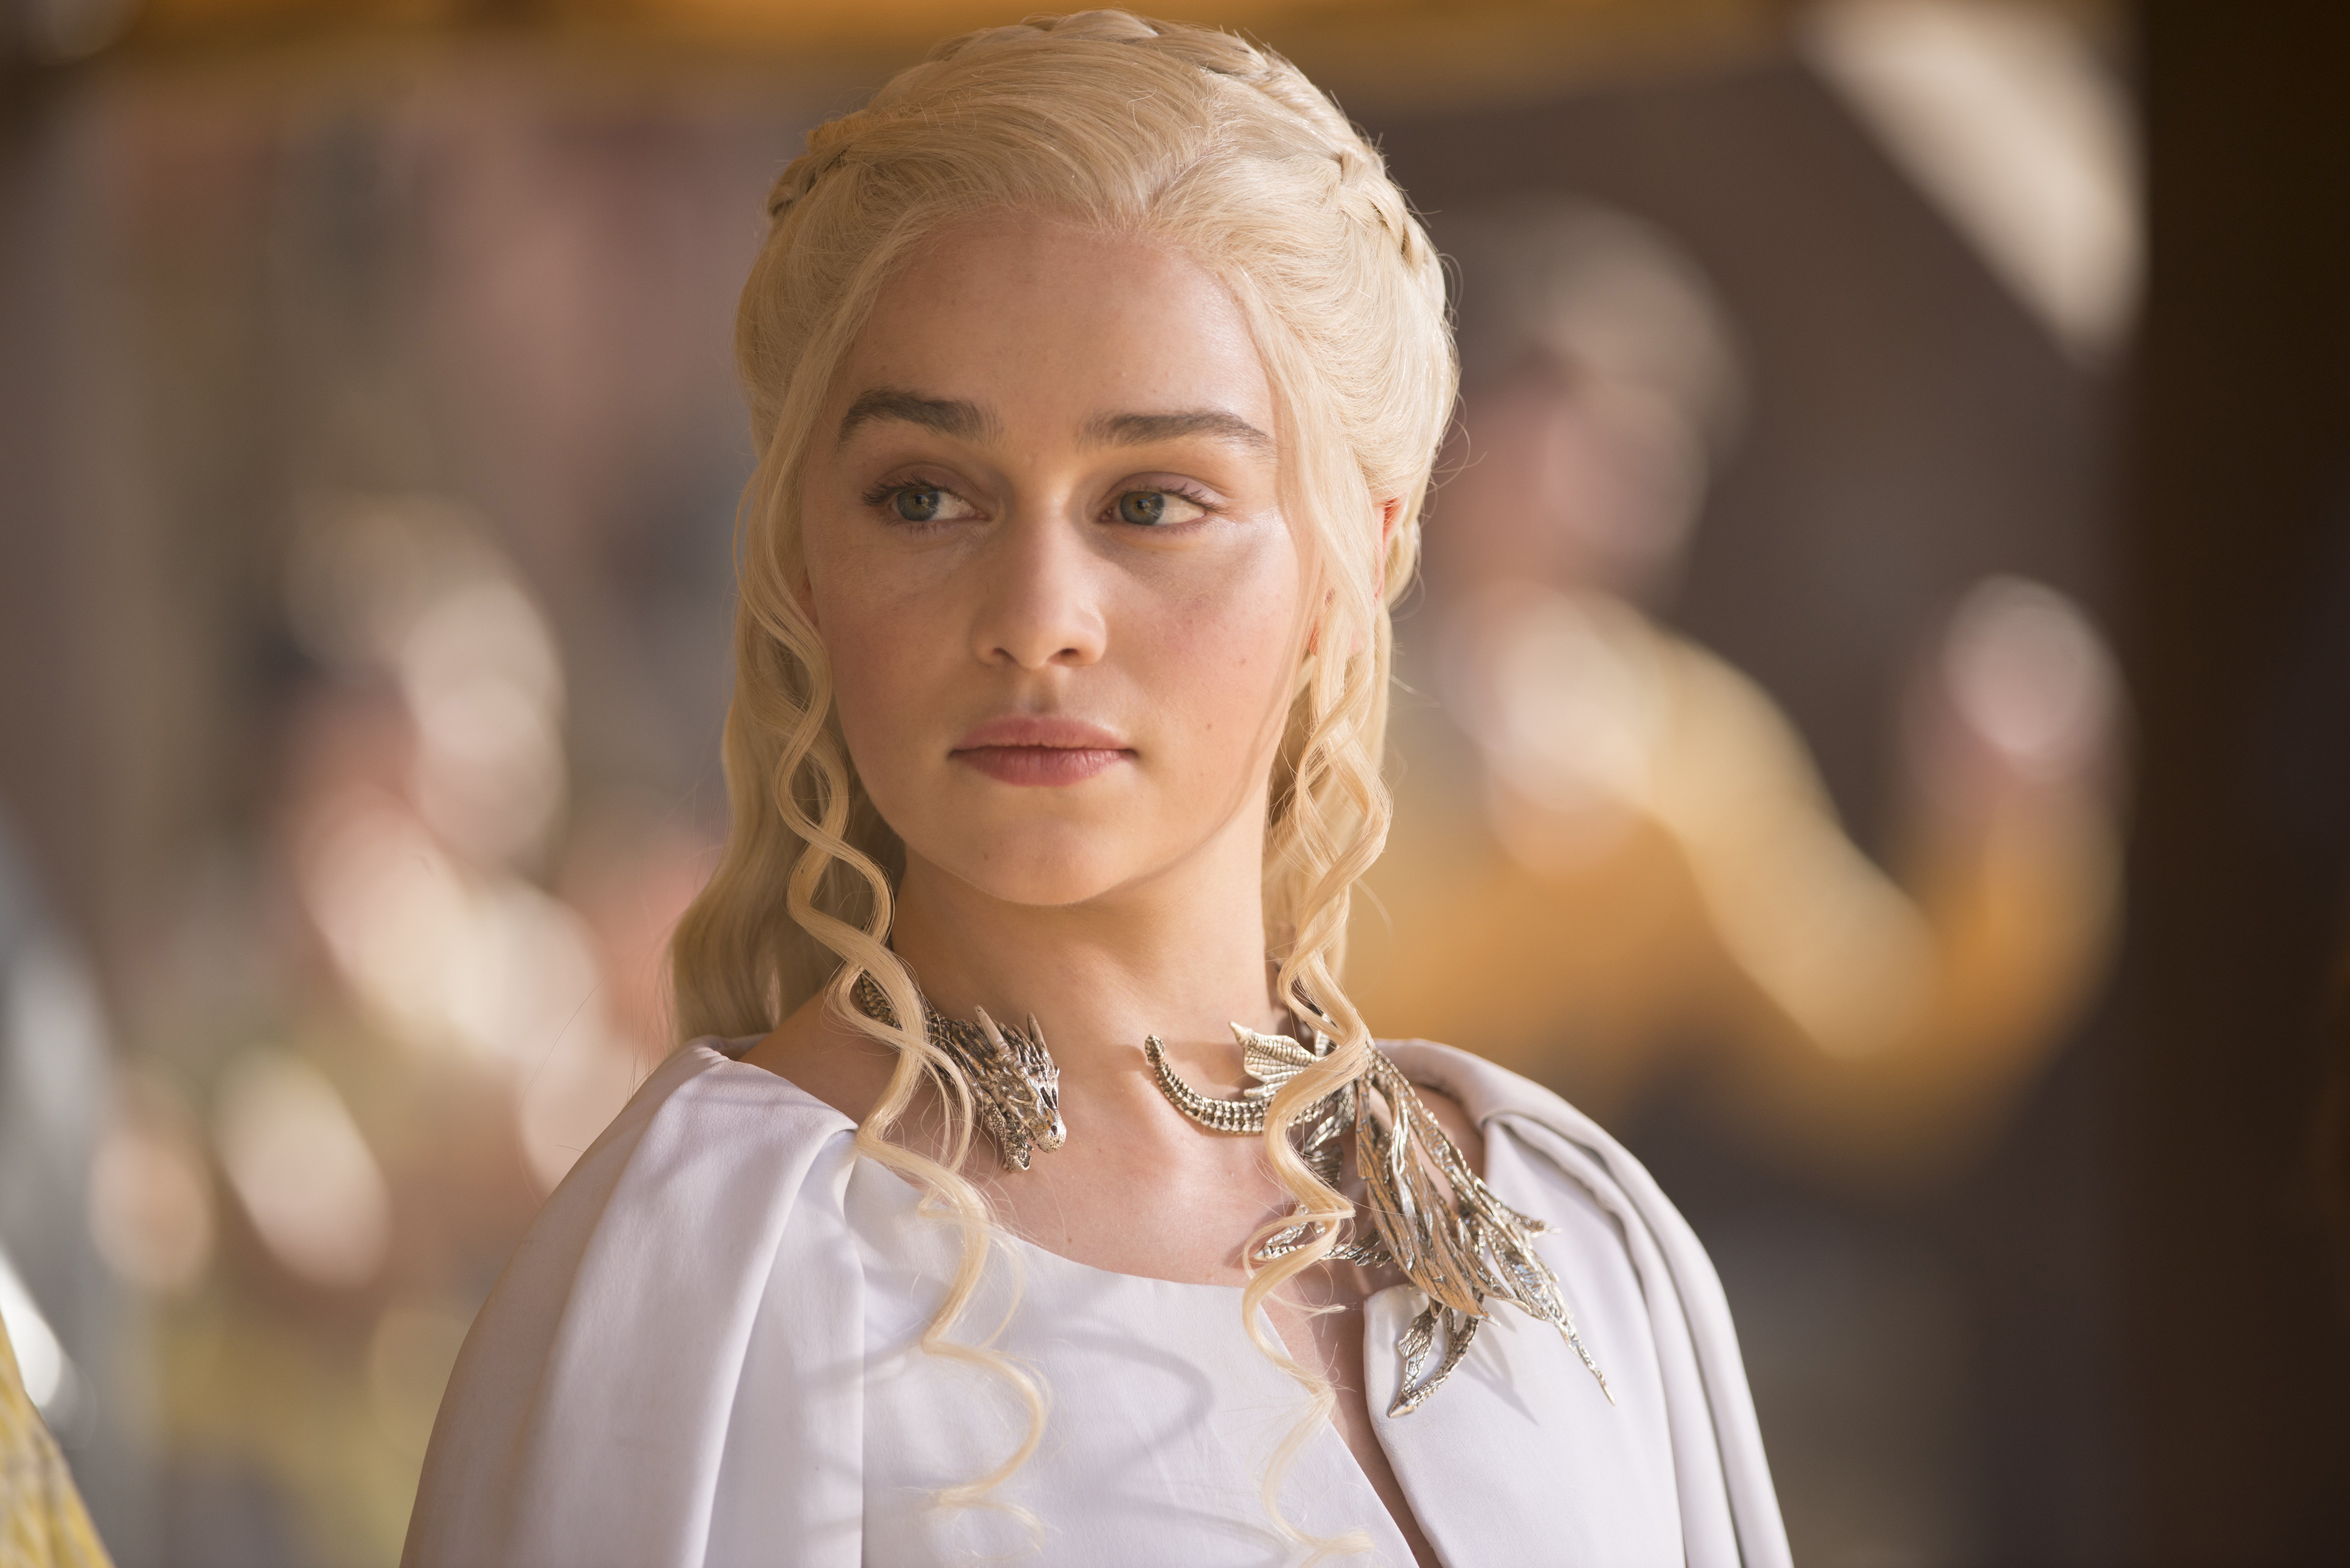 Game of Thrones (HBO) TV Series Season 5, 2015Episode: The Dance of Dragons Airdate: June 7, 2015Shown: Emilia Clarke